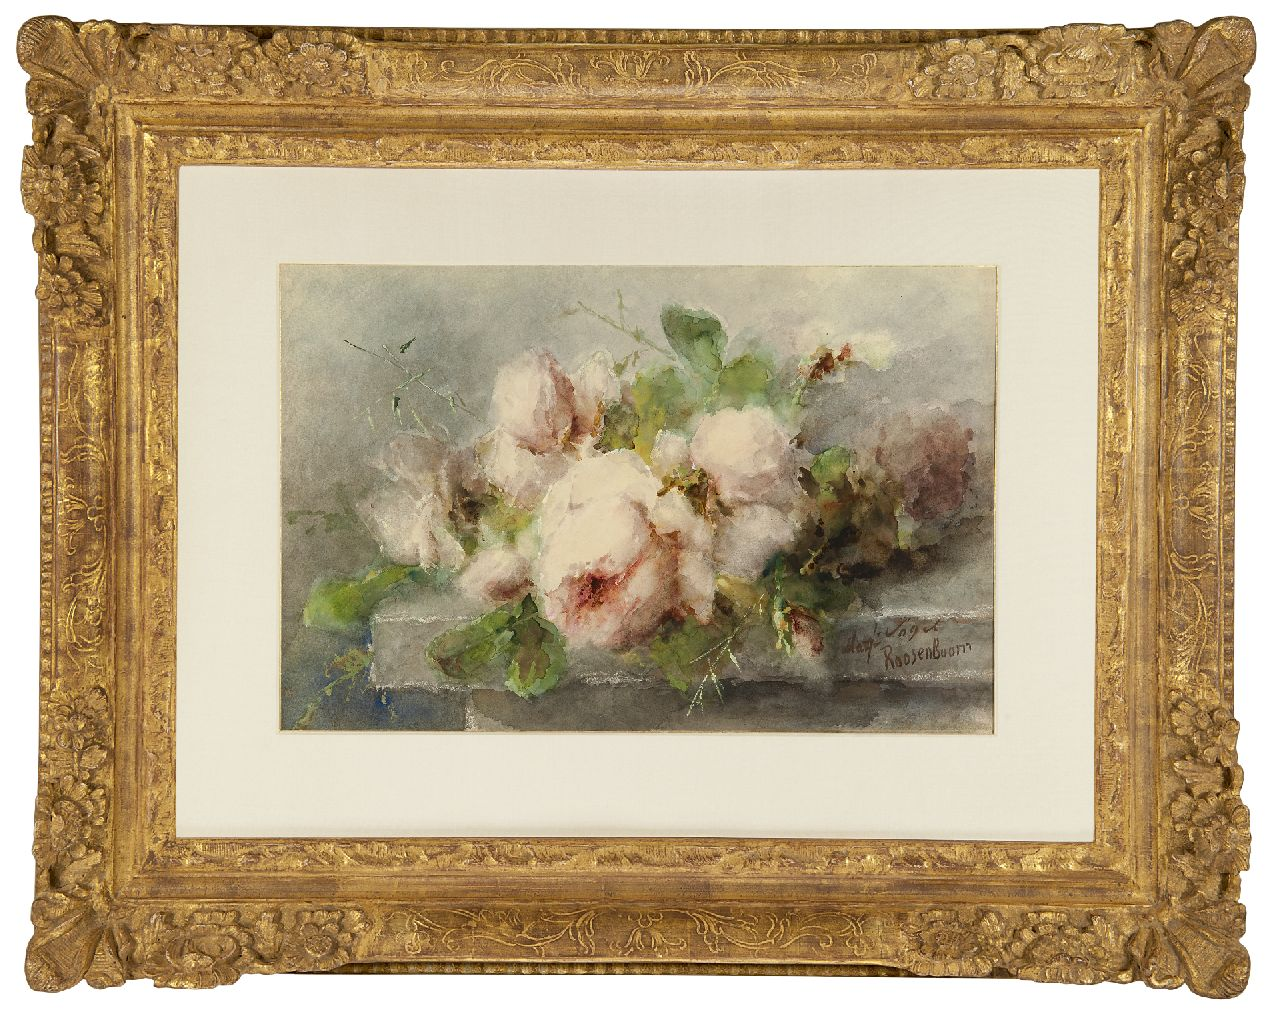 Roosenboom M.C.J.W.H.  | 'Margaretha' Cornelia Johanna Wilhelmina Henriëtta Roosenboom | Watercolours and drawings offered for sale | Pink roses on a stone ledge, watercolour and gouache on paper 35.1 x 53.3 cm, signed l.r.